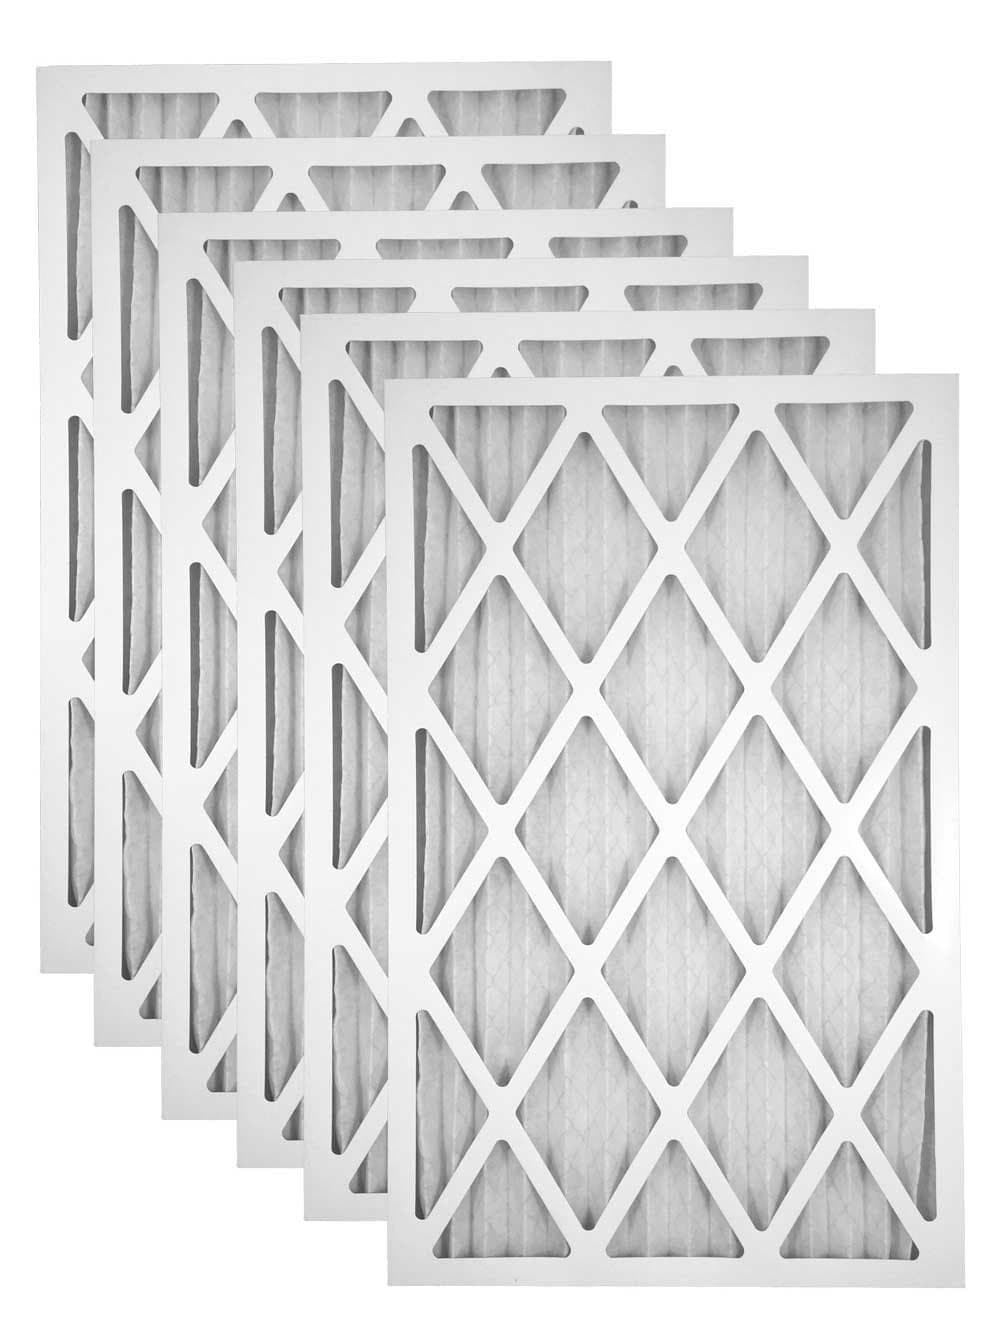 18x22x1 Merv 13 Pleated AC Furnace Filter - Case of 6 by Atomic Filters